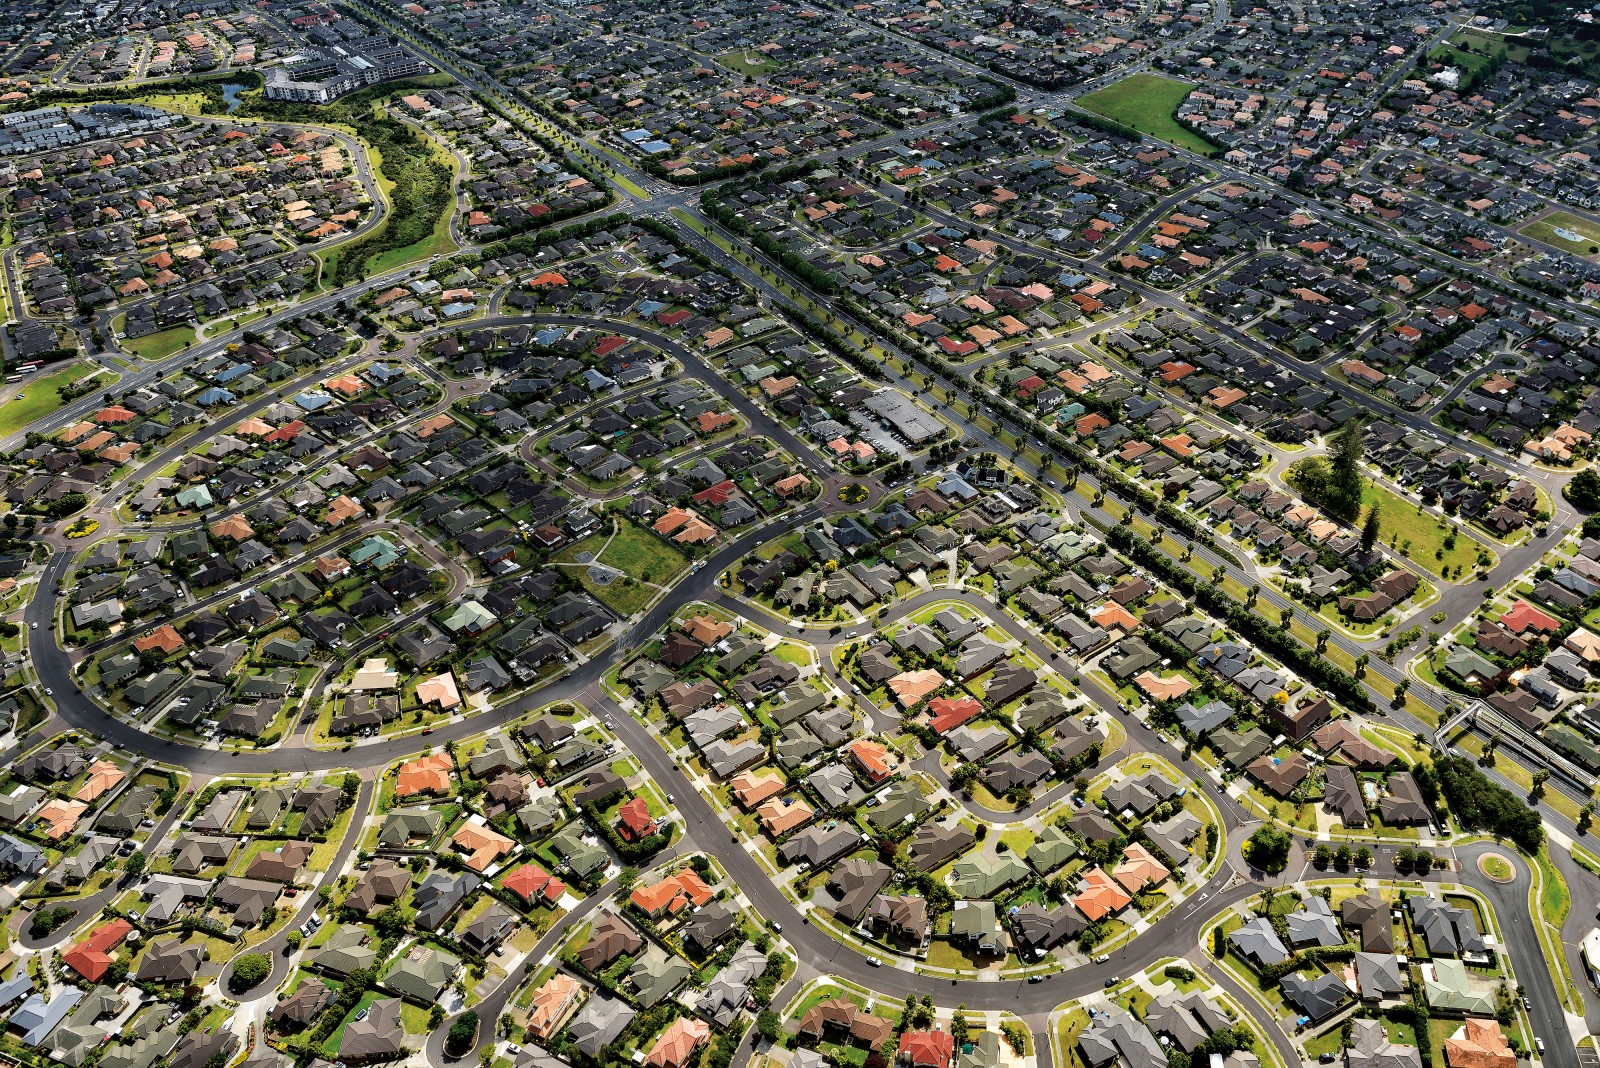 In 2001, the suburb of Flat Bush in Auckland's south-east was farmland; by 2025 it's expected to be home to as many people as Nelson. It echoes similar large-scale suburban developments at Albany in the city's north. The New Zealand Centre for Sustainable Cities is in the middle of a four-year project looking at the environmental and social impacts of such greenfields development, compared with more compact development alternatives closer to the city. Compact developments include smaller homes that cost less to heat, reduced distances between destinations, lower emissions, increased opportunities for exercise, lower healthcare costs and greater social cohesion.